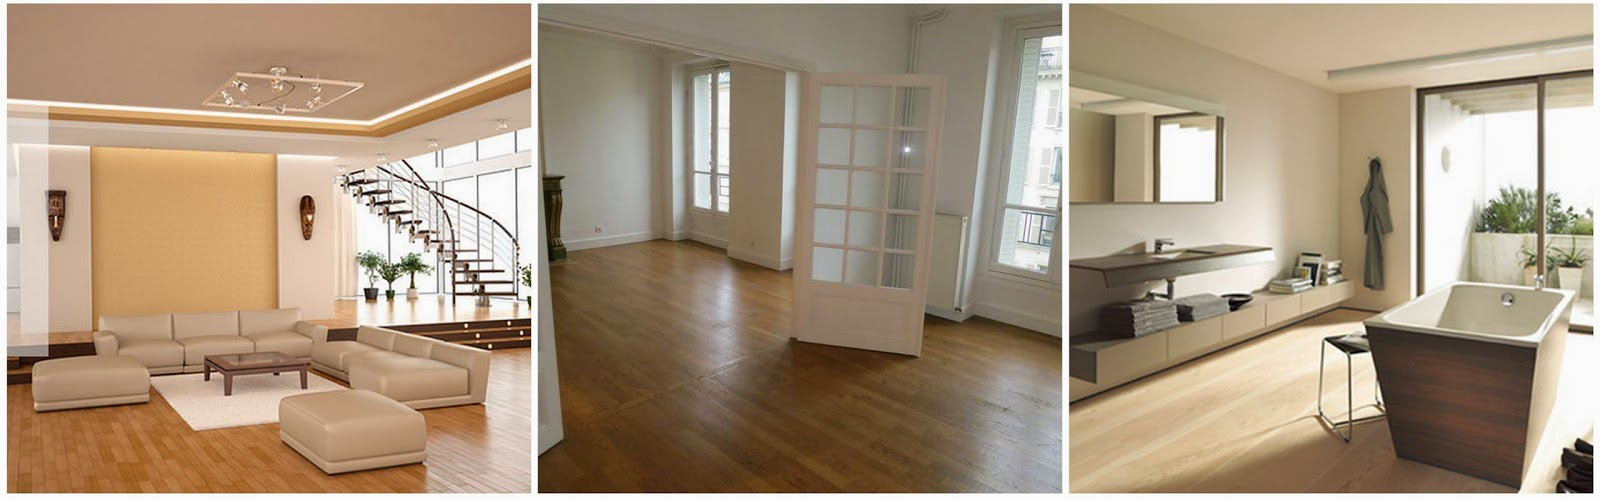 Travaux appartement 92320 chatillon